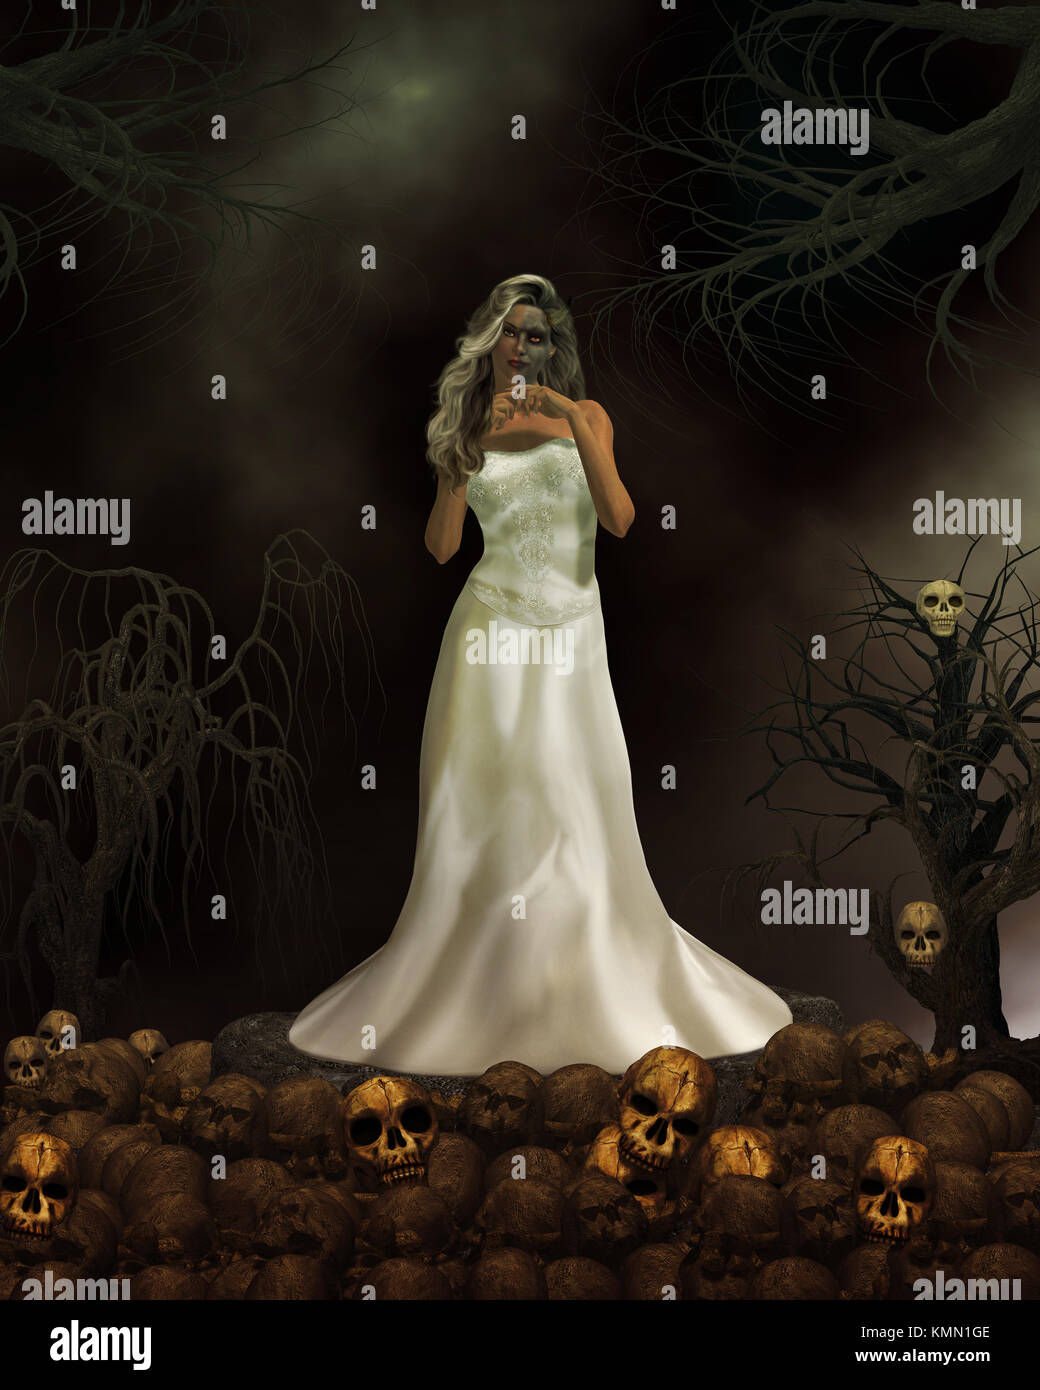 Female demon in wedding dress ready to get married again Stock Photo